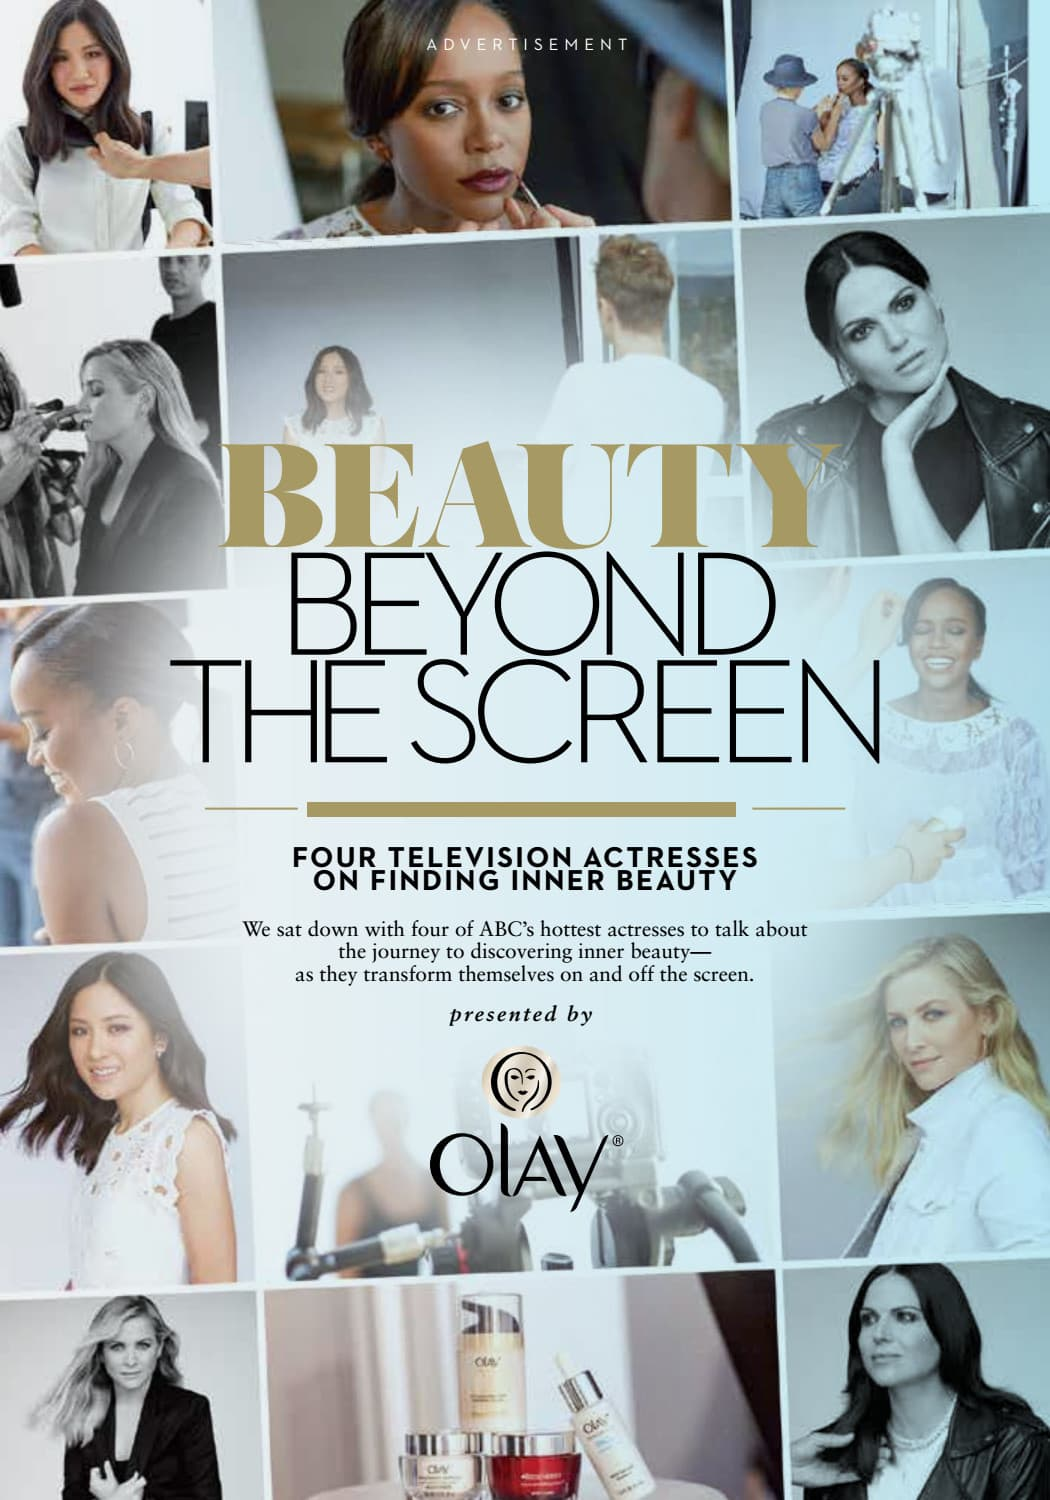 OLAY - BEAUTY BEYOND THE SCREEN